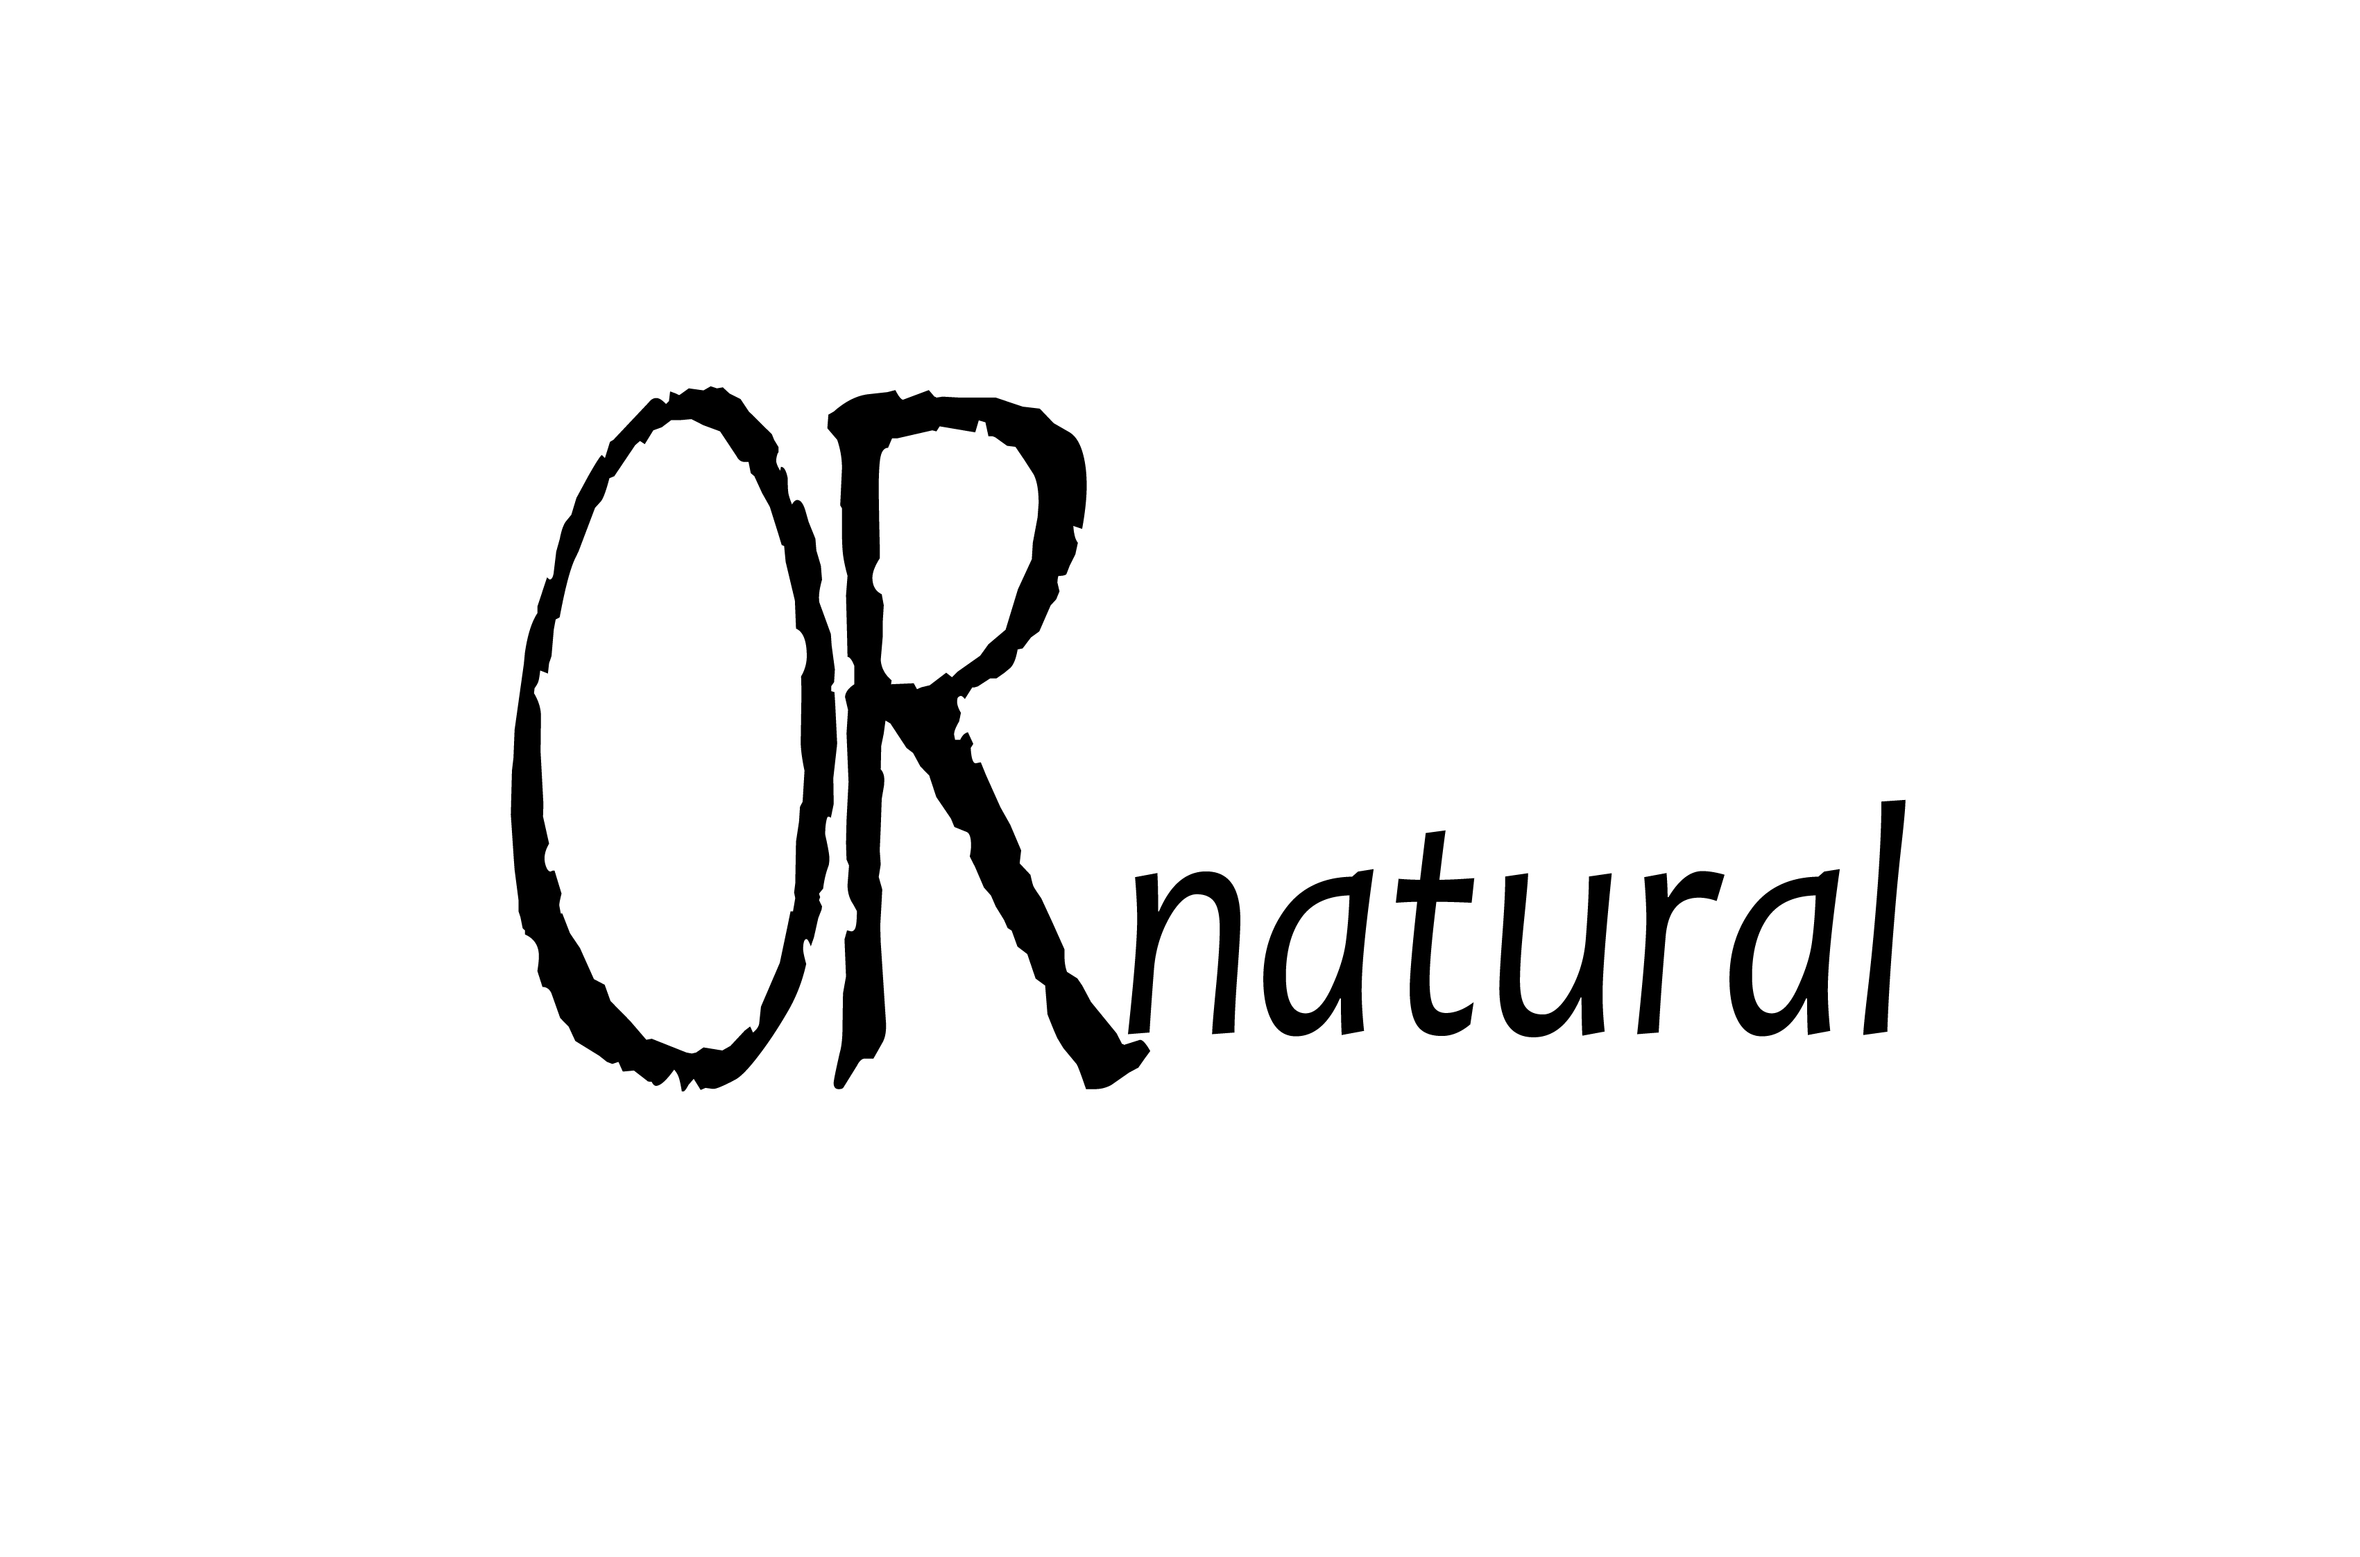 ORnatural